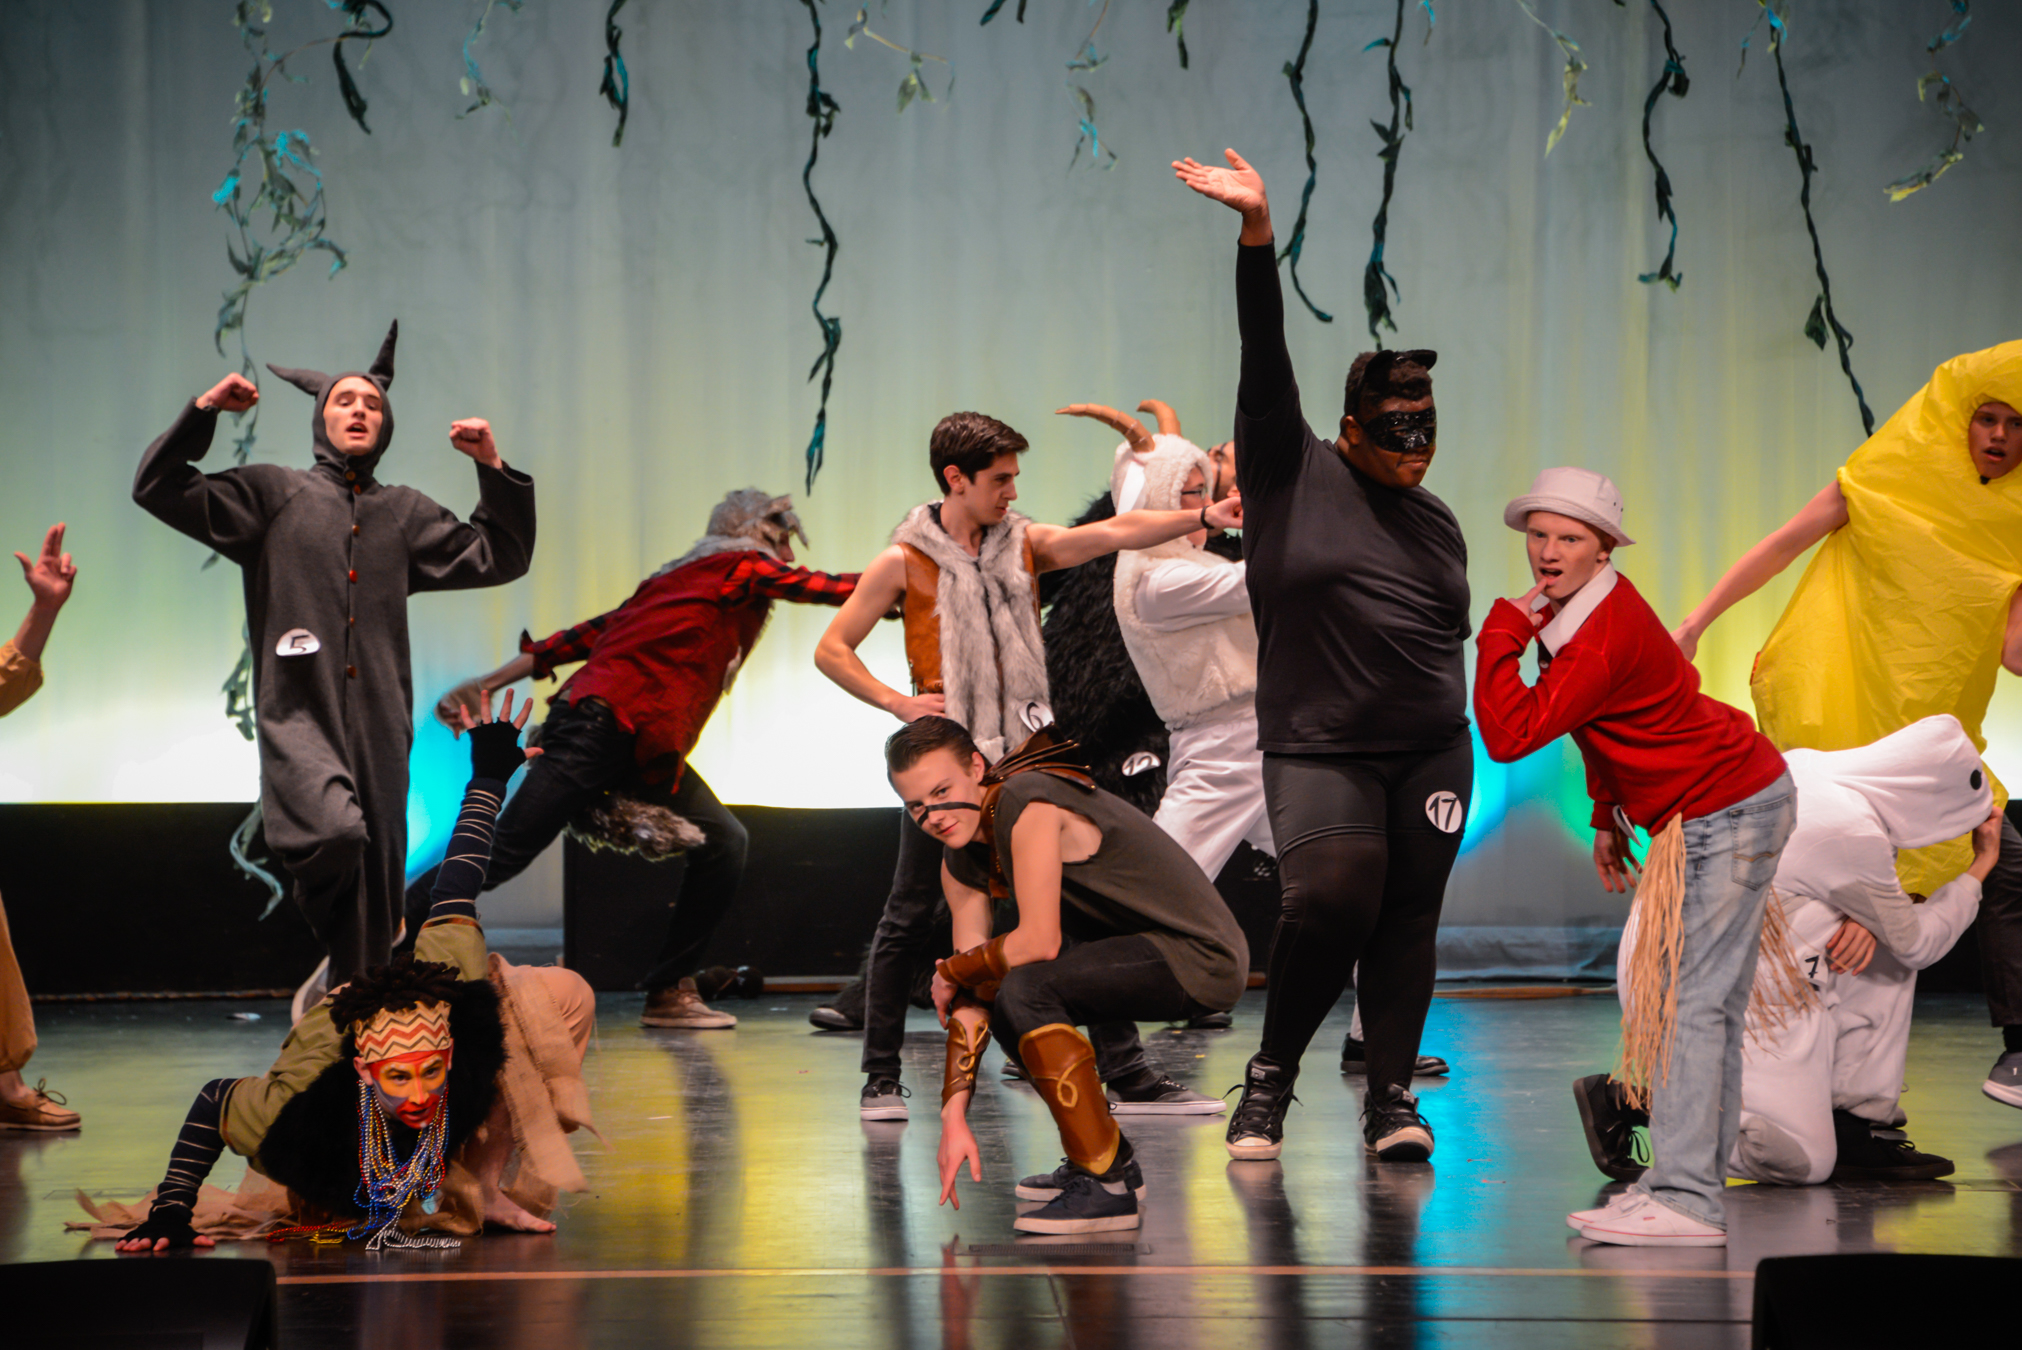 Mr. Madsion contestants performing in their opening dance number. at the Mr. Madison Contest. Photo courtesy: John Tourcotte